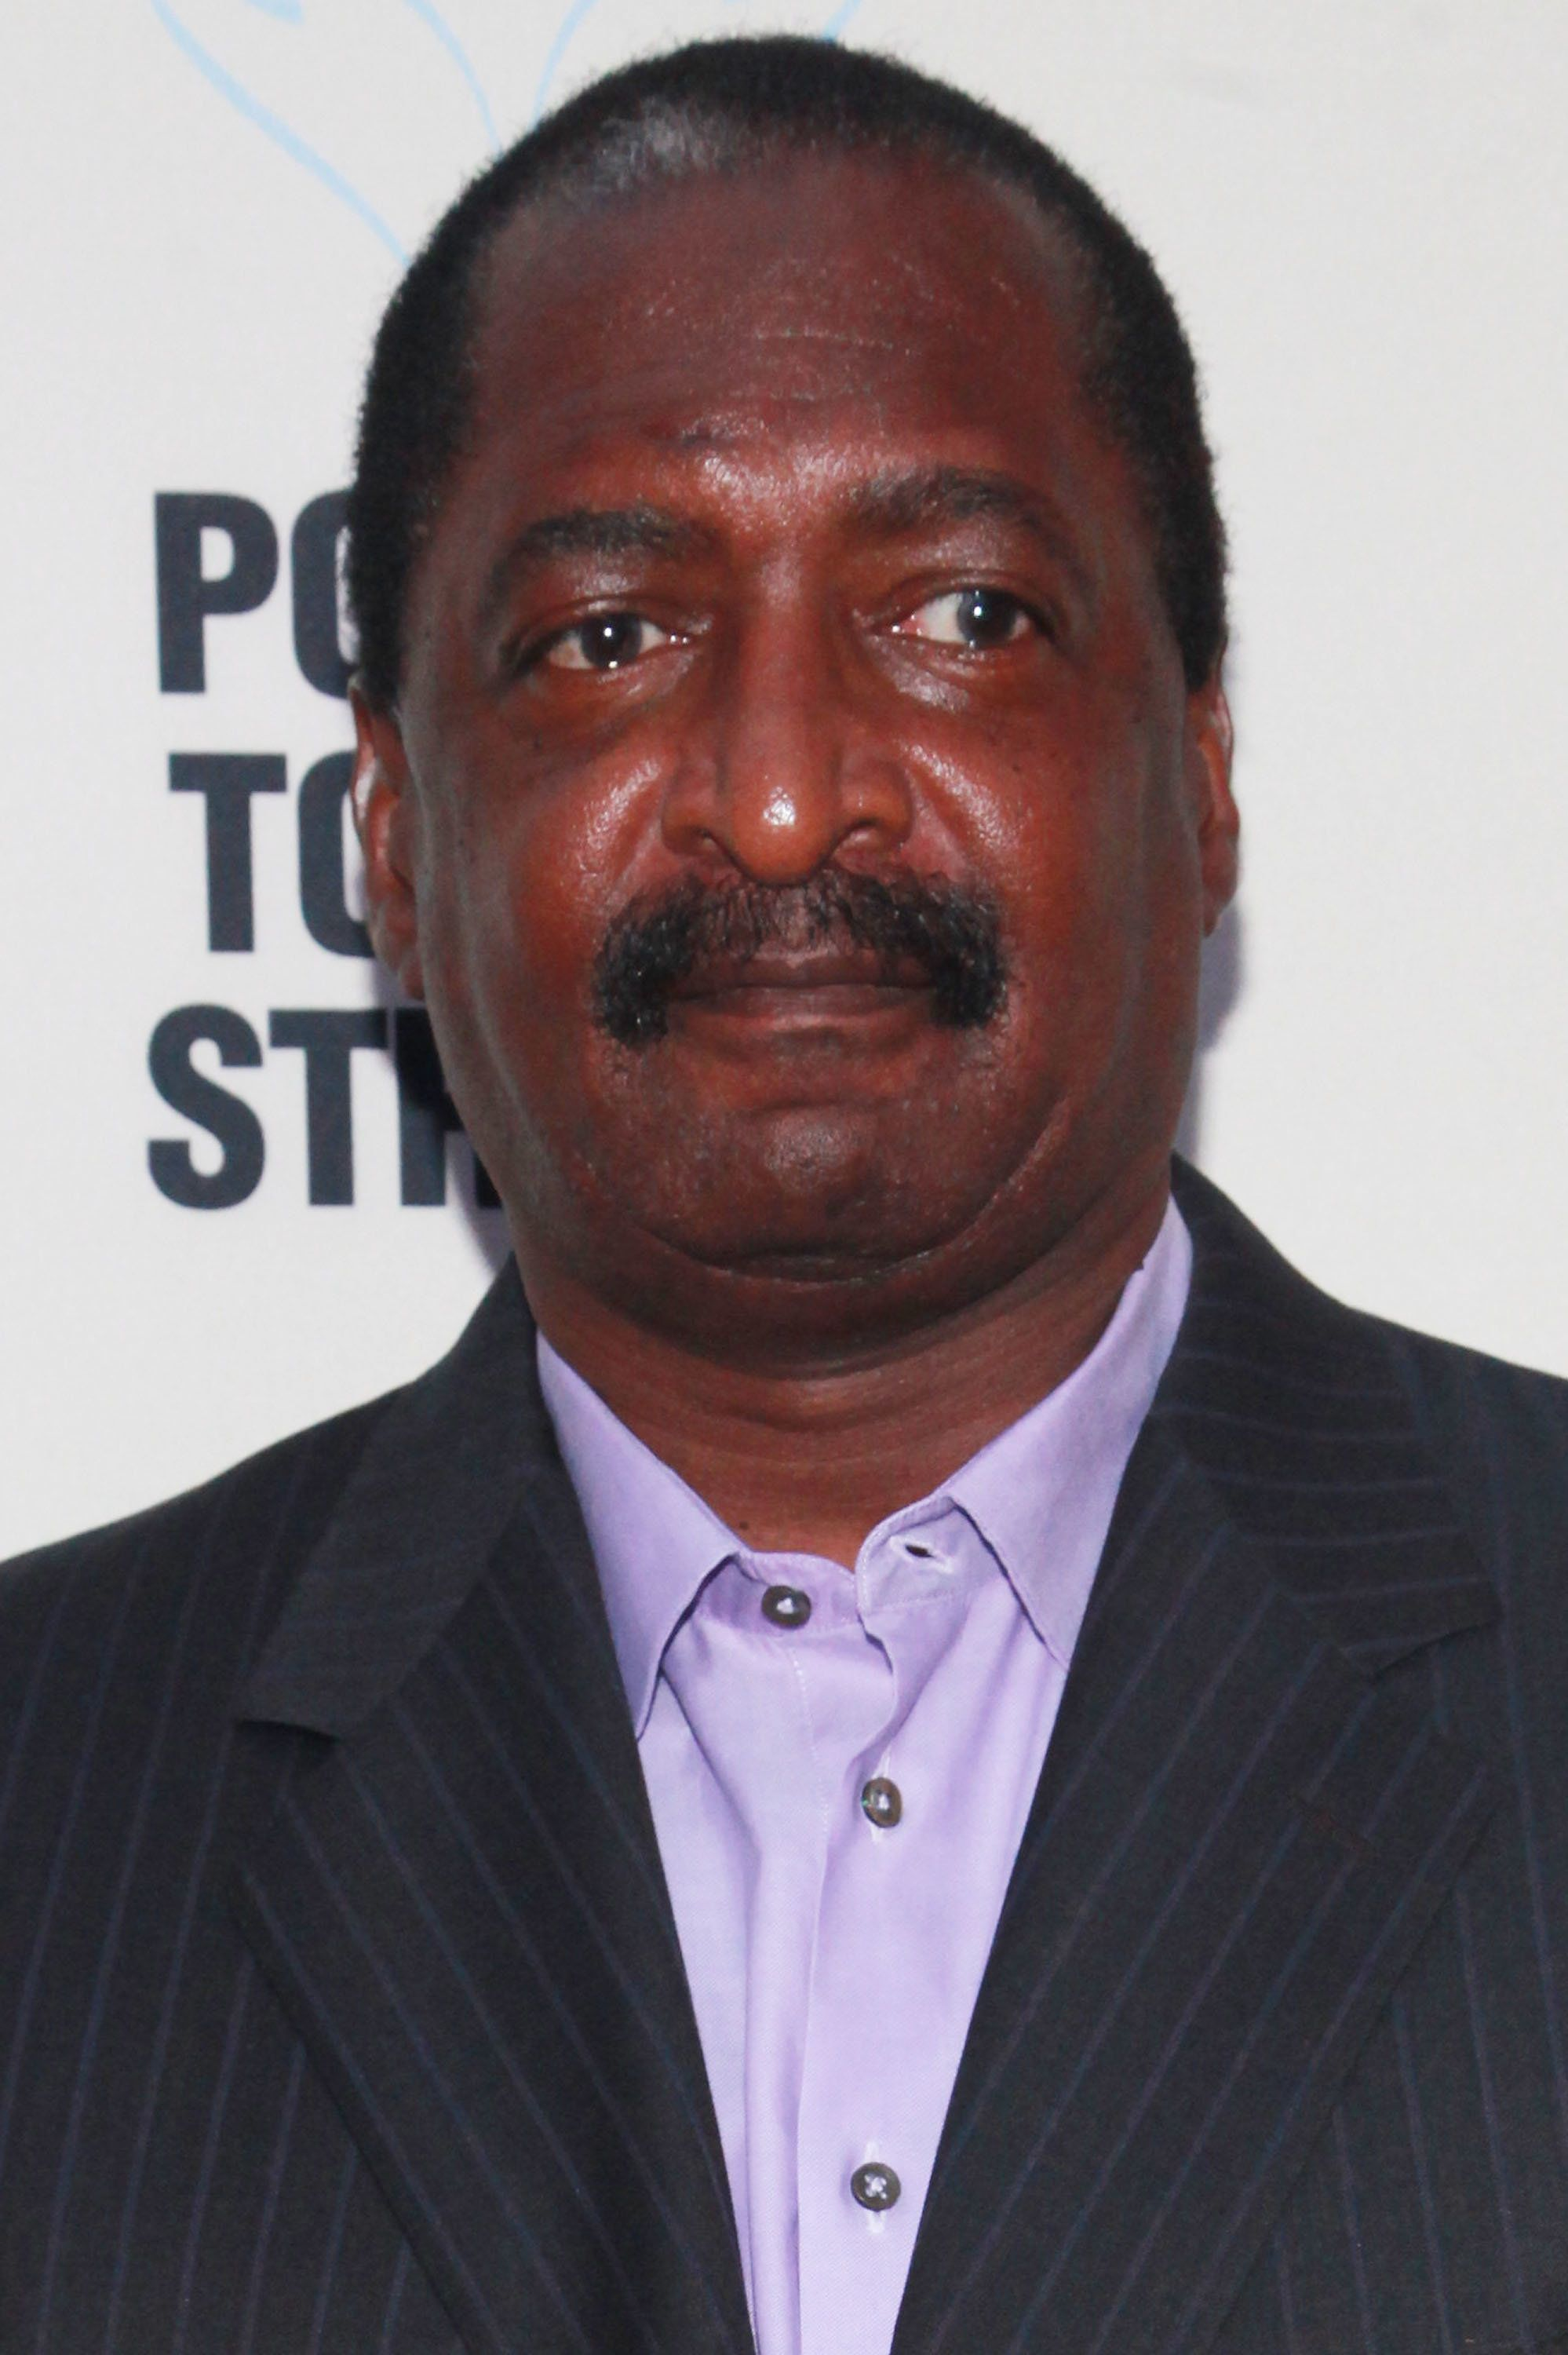 NEW YORK, NY - MAY 06:  CEO of Music World Entertainment, Mathew Knowles attends the You Are the Power concert at The Apollo Theater on May 6, 2011 in New York City.  (Photo by Astrid Stawiarz/Getty Images)